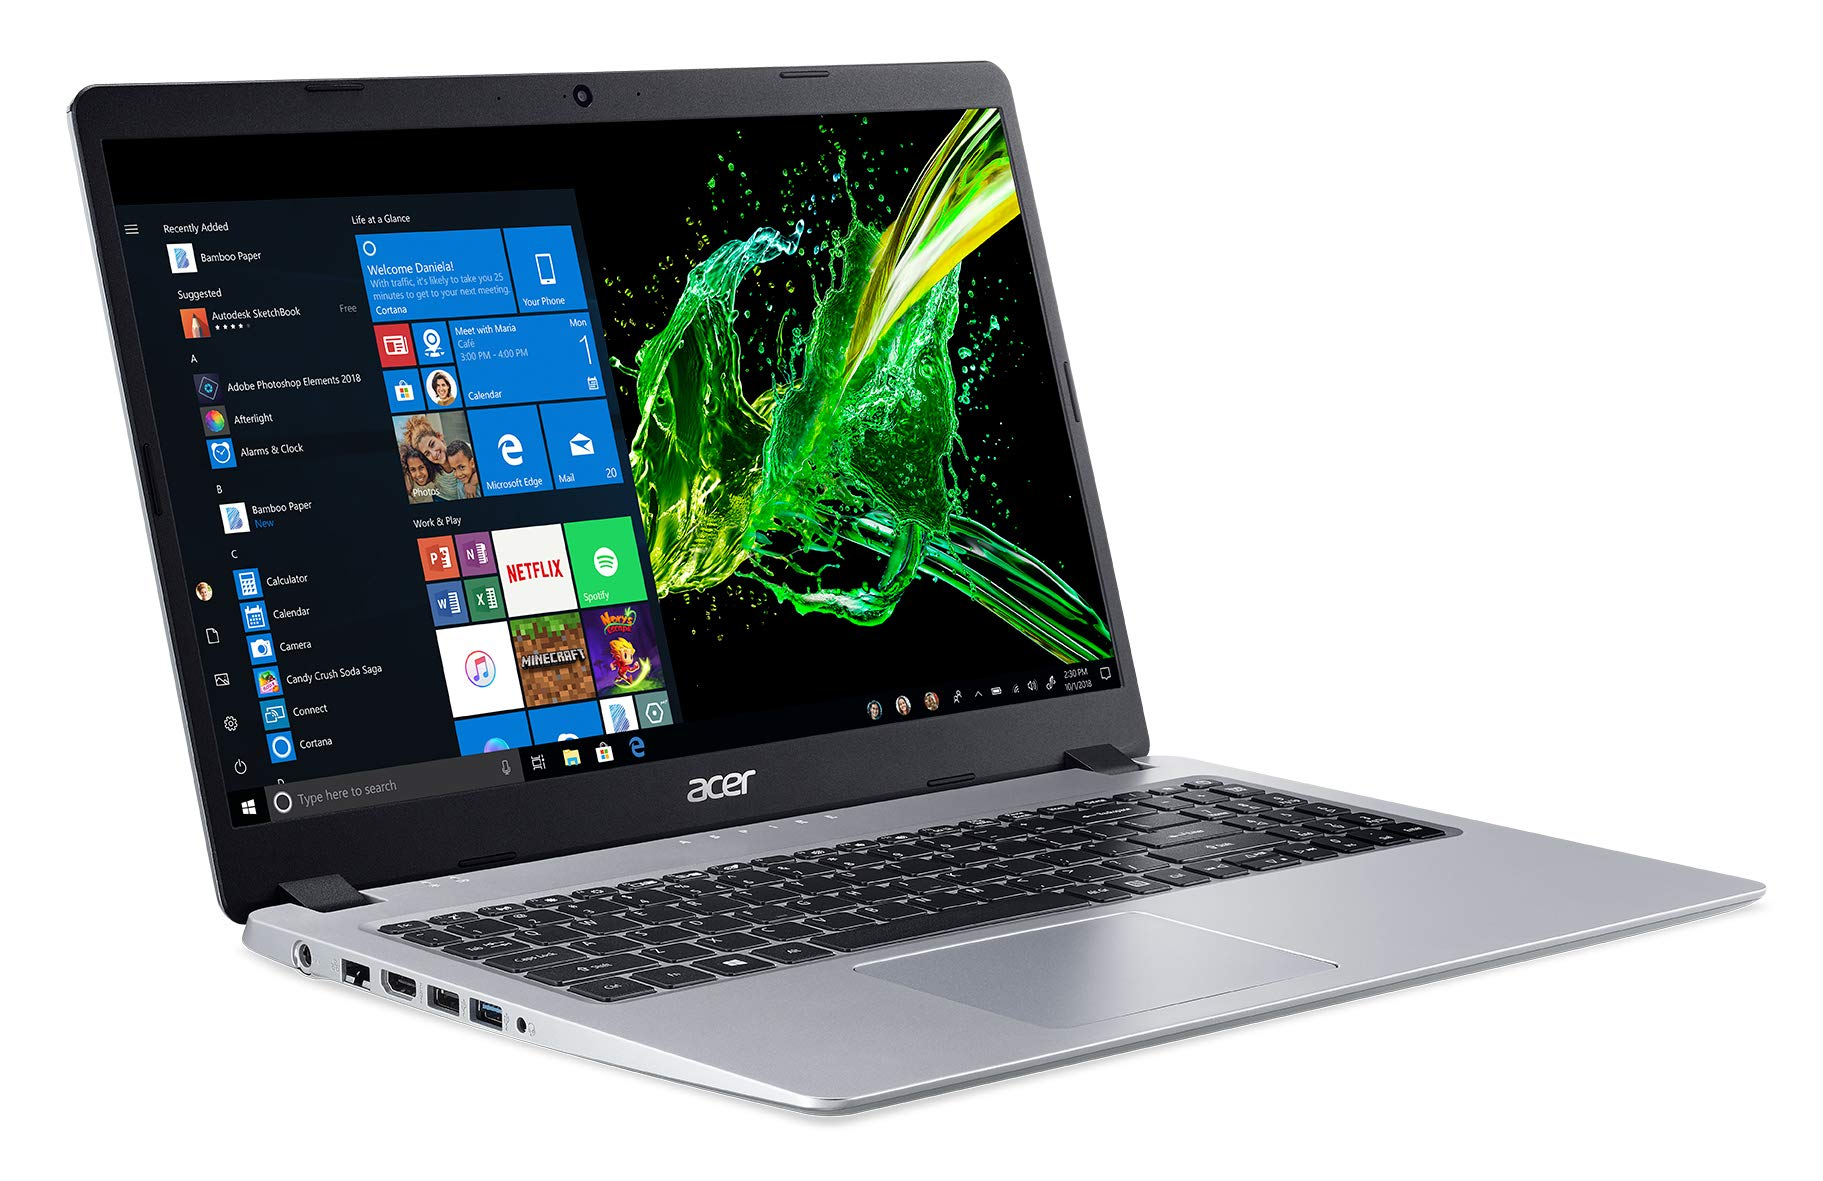 "Acer Aspire 5, 15.6"" Full HD IPS Display, AMD Ryzen 3 3200U, Vega 3 Graphics, 4GB DDR4, 128GB SSD, Backlit Keyboard, Windows 10 in S Mode, A515-43-R19L 1"